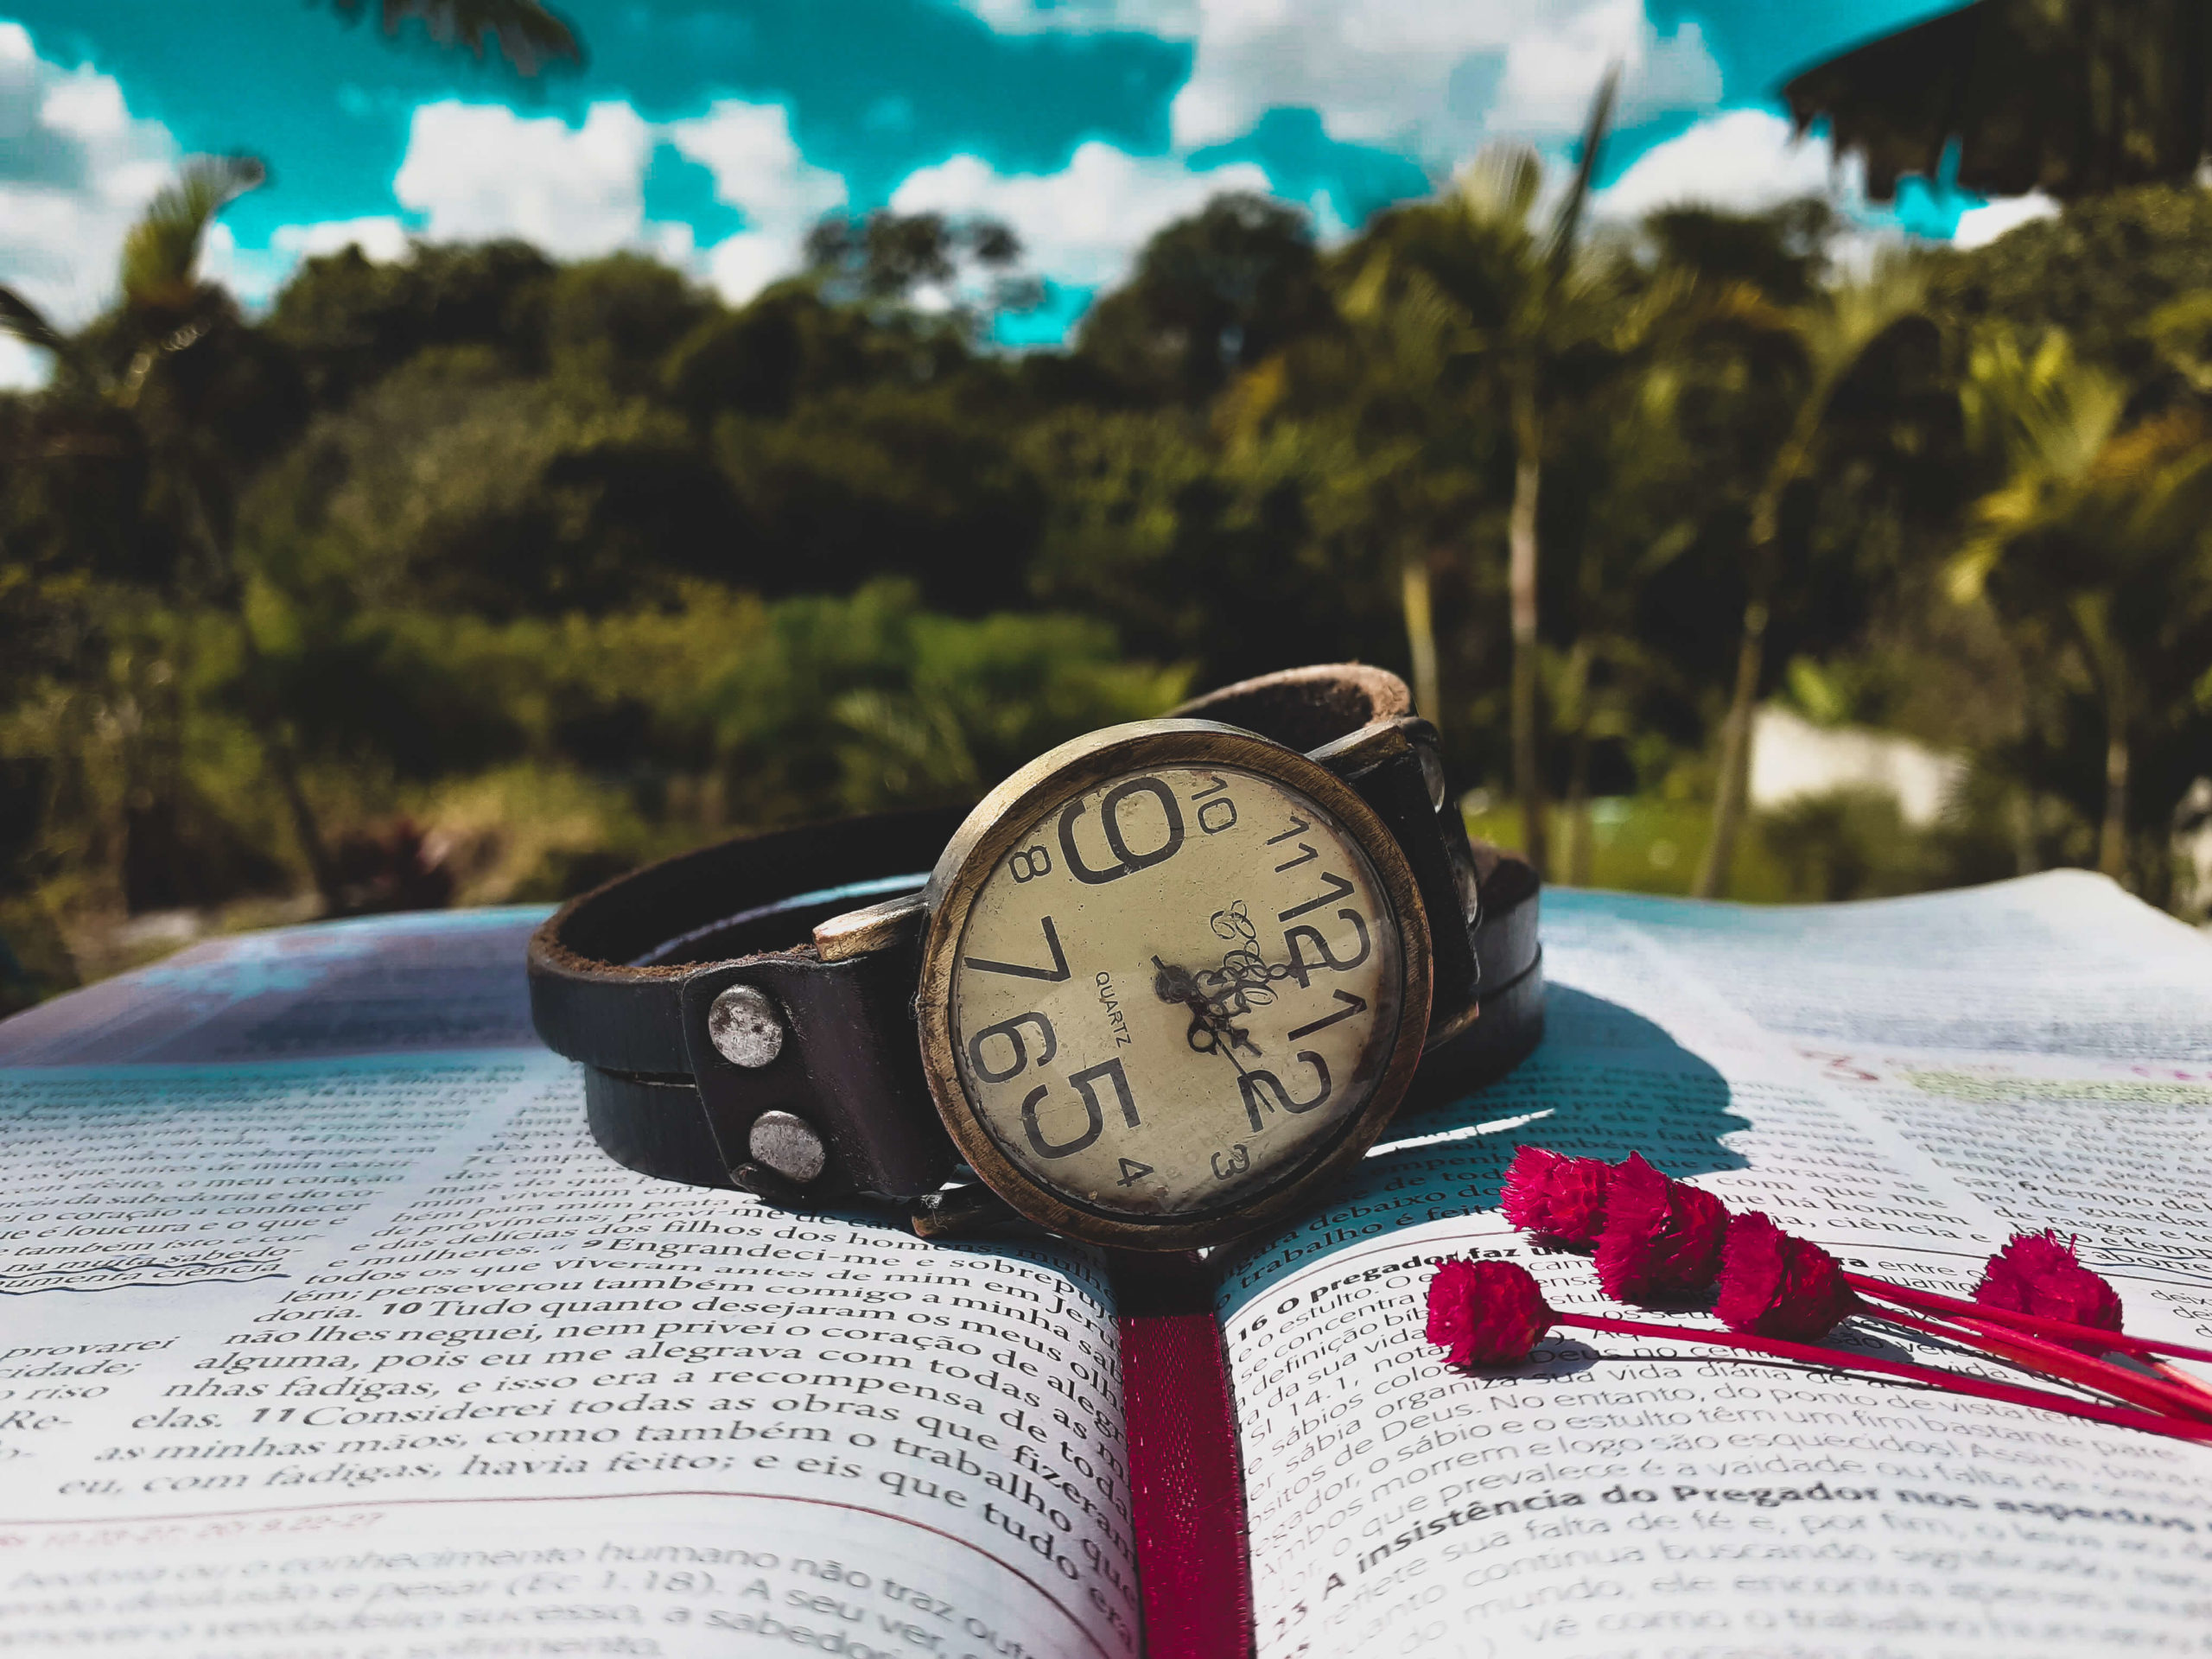 Watch on top of an open Bible